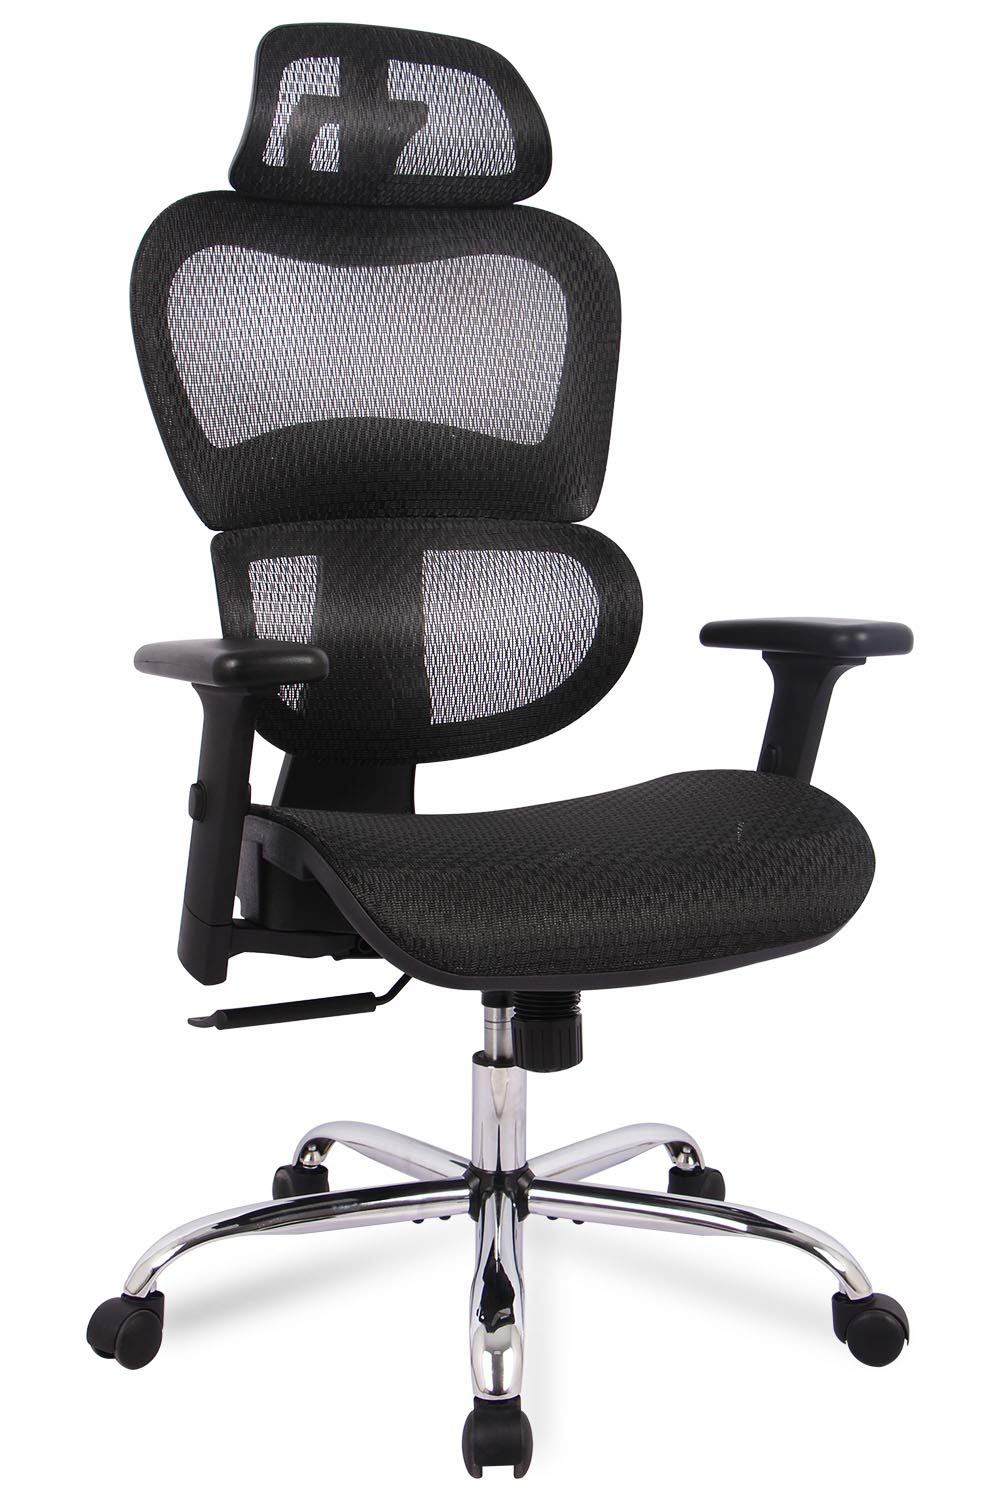 Office Chair, Ergonomics Mesh Chair Computer Chair Desk Chair High Back Chair w/Adjustable Headrest and Armrest by SMUGDESK